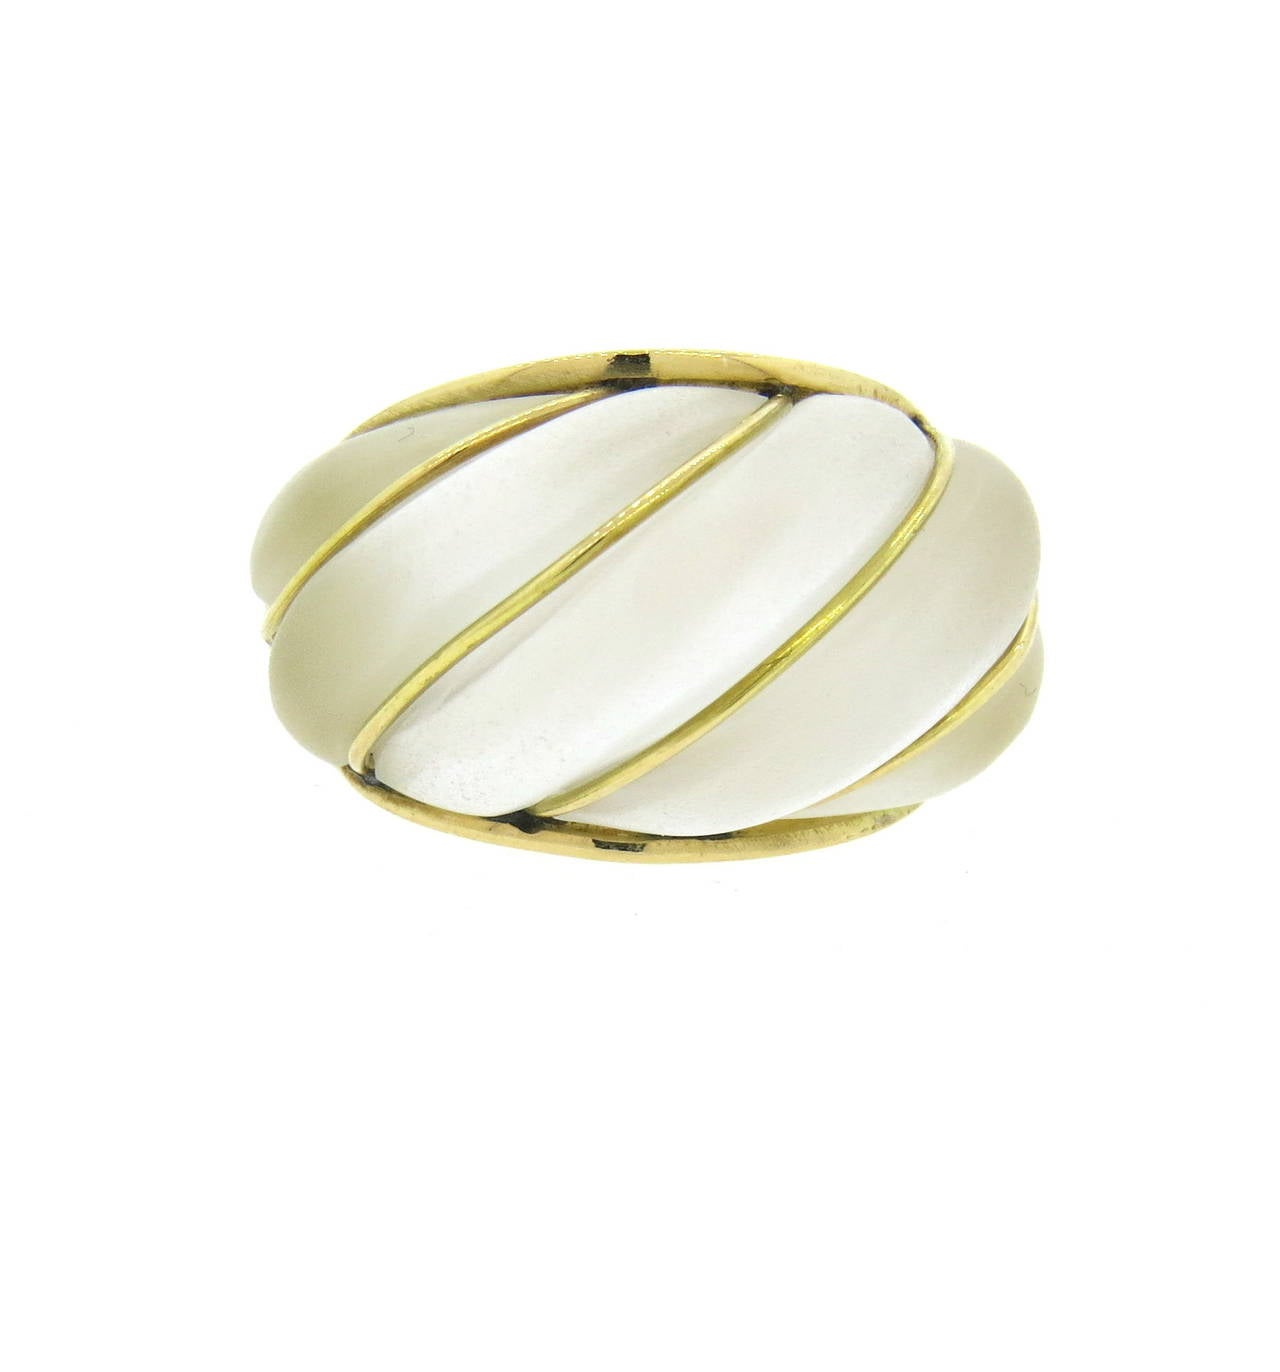 18k gold dome ring with frosted crystal top. Ring size 6 1/4, ring top is 15mm wide. Weight of the piece - 12.1 grams